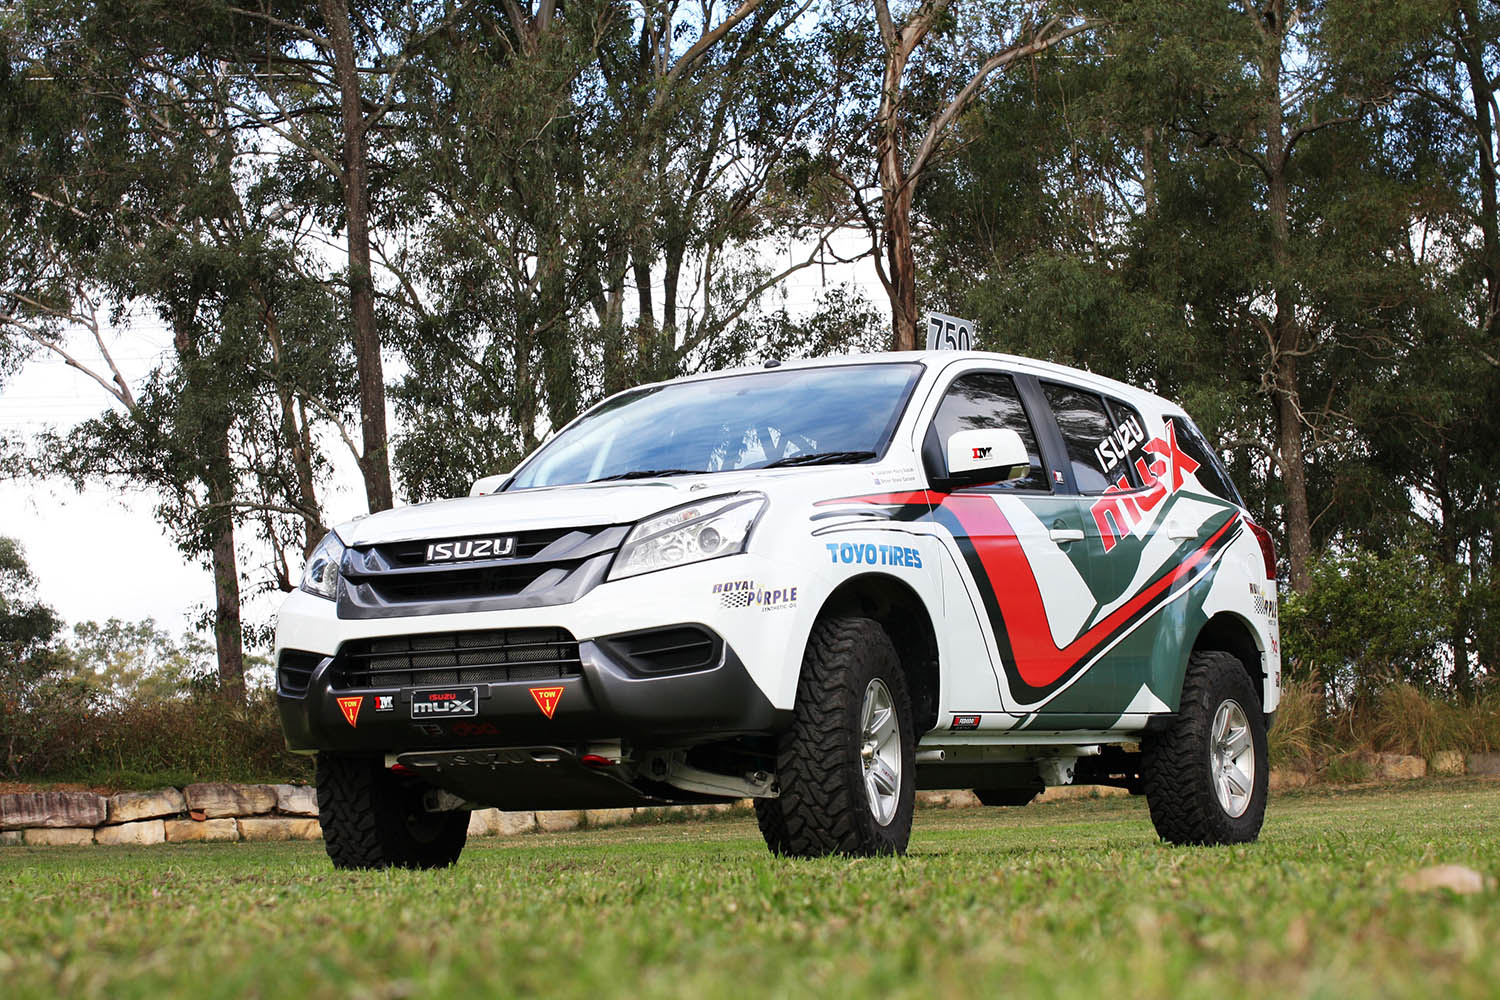 Garland to debut new Dakar spec Isuzu MU-X at Finke